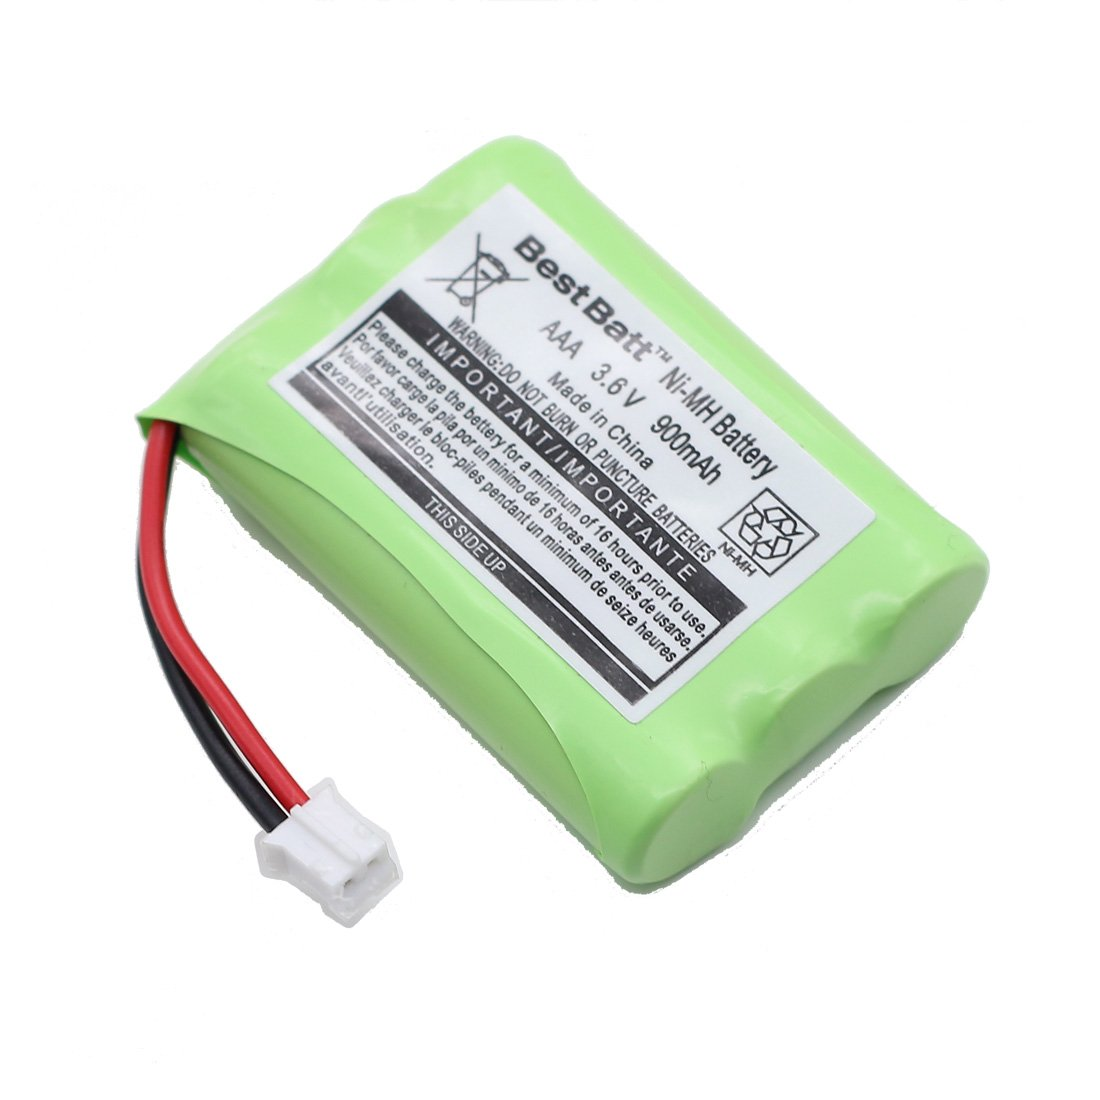 BestBatt 900mAh Replacement Battery for Motorola MBP27T, MBP33, MBP33S, MBP33PU, MBP36, MBP36S, MBP36PU Baby Monitors